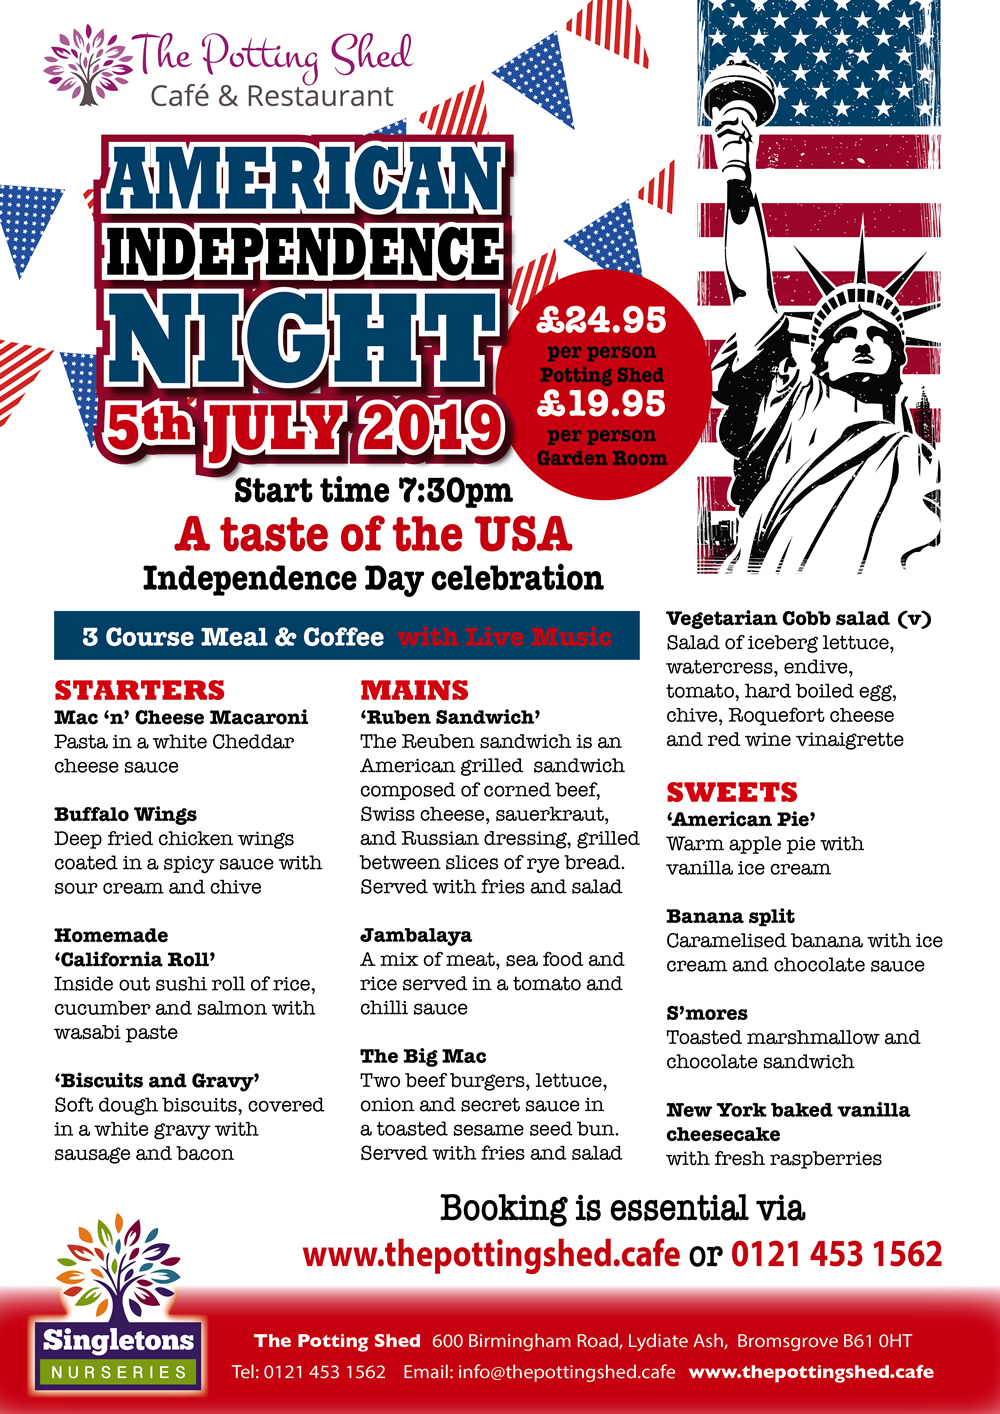 American Independence Night Menu